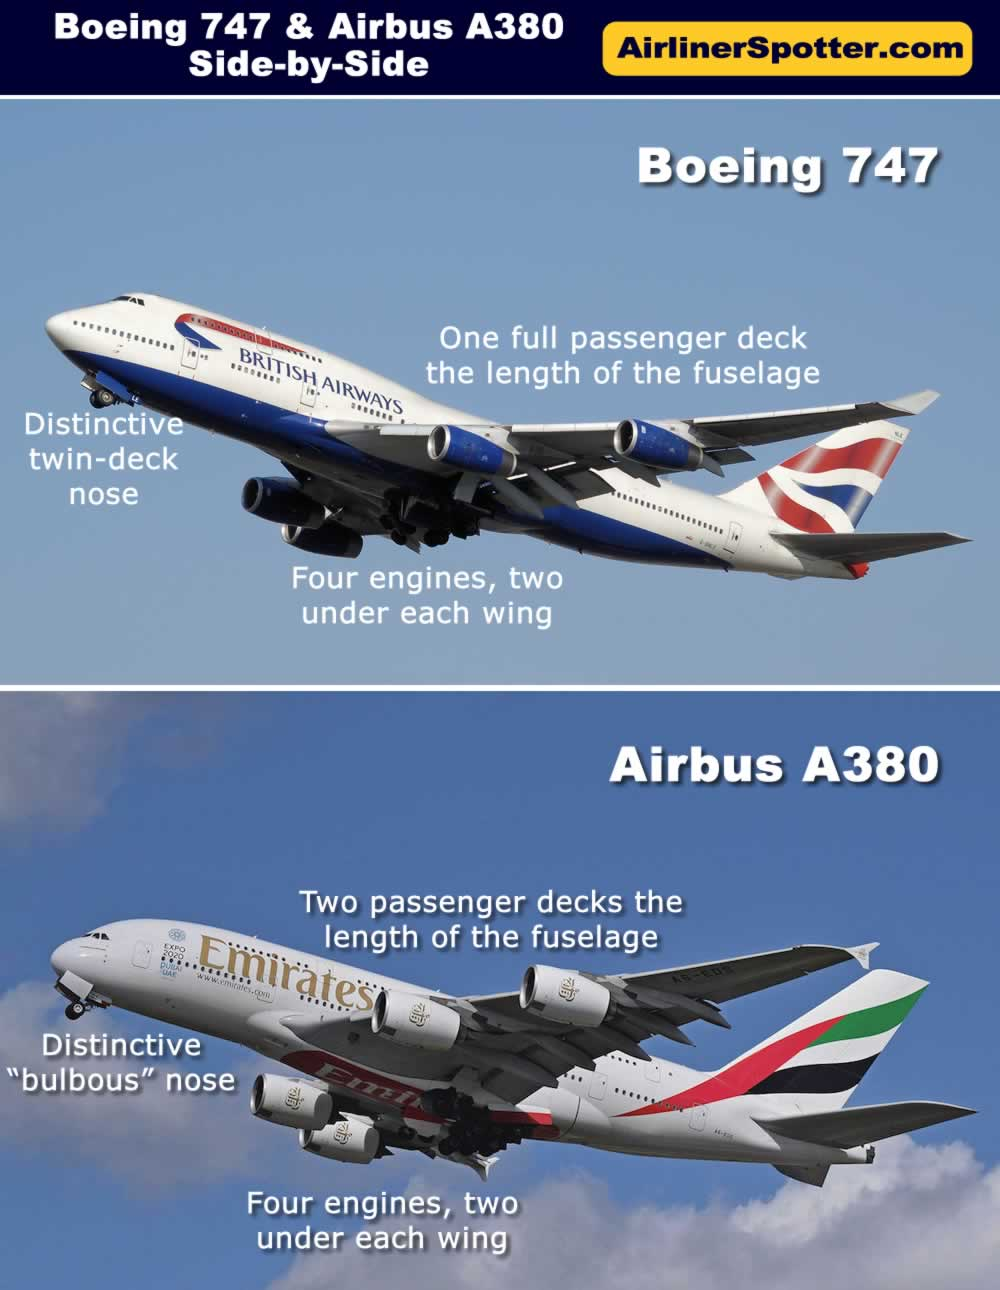 Side-by-side comparison of the Boeing 747 (top) and Airbus A380 (below)